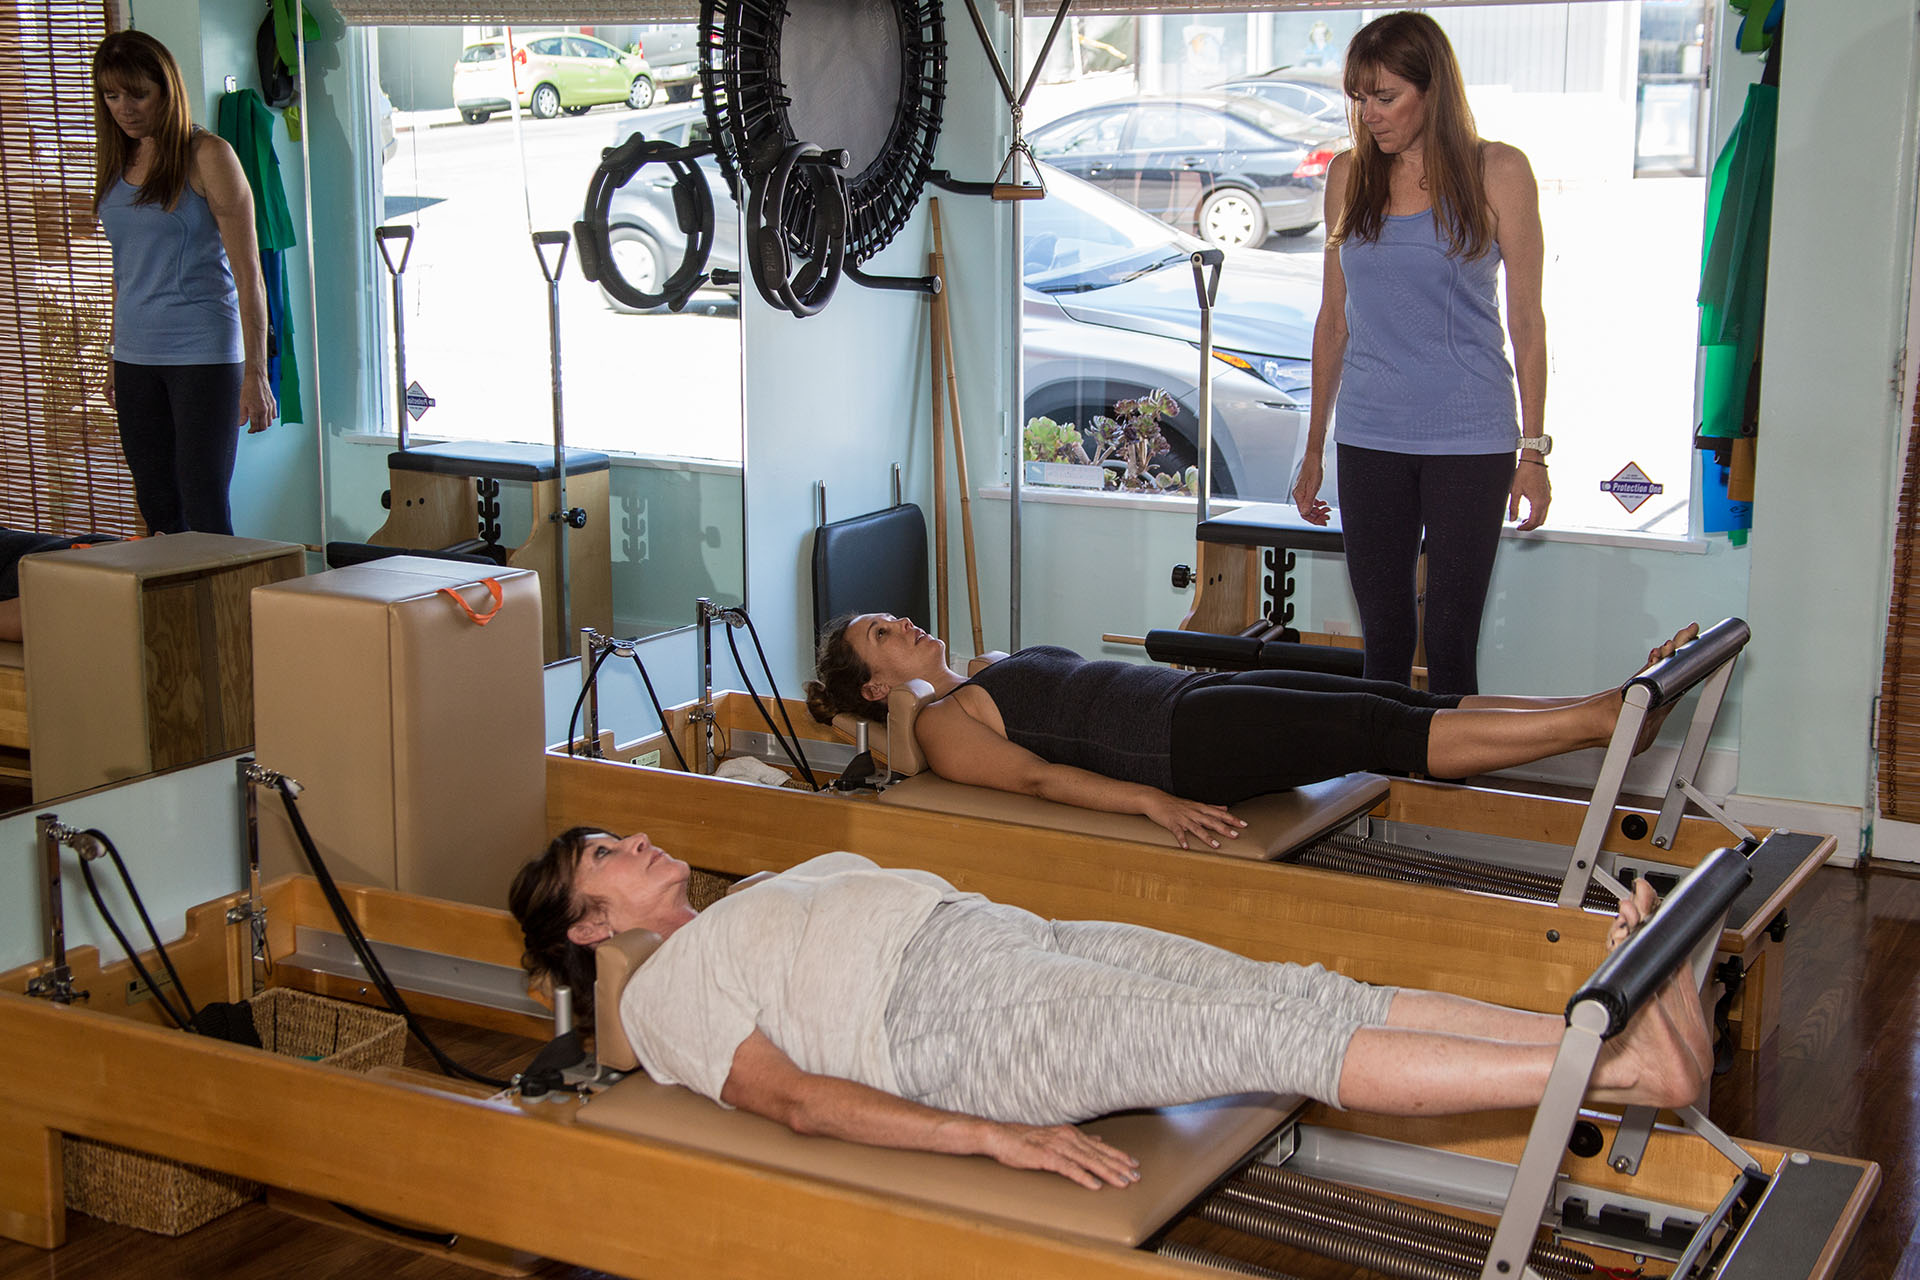 susie_group_fitness-1